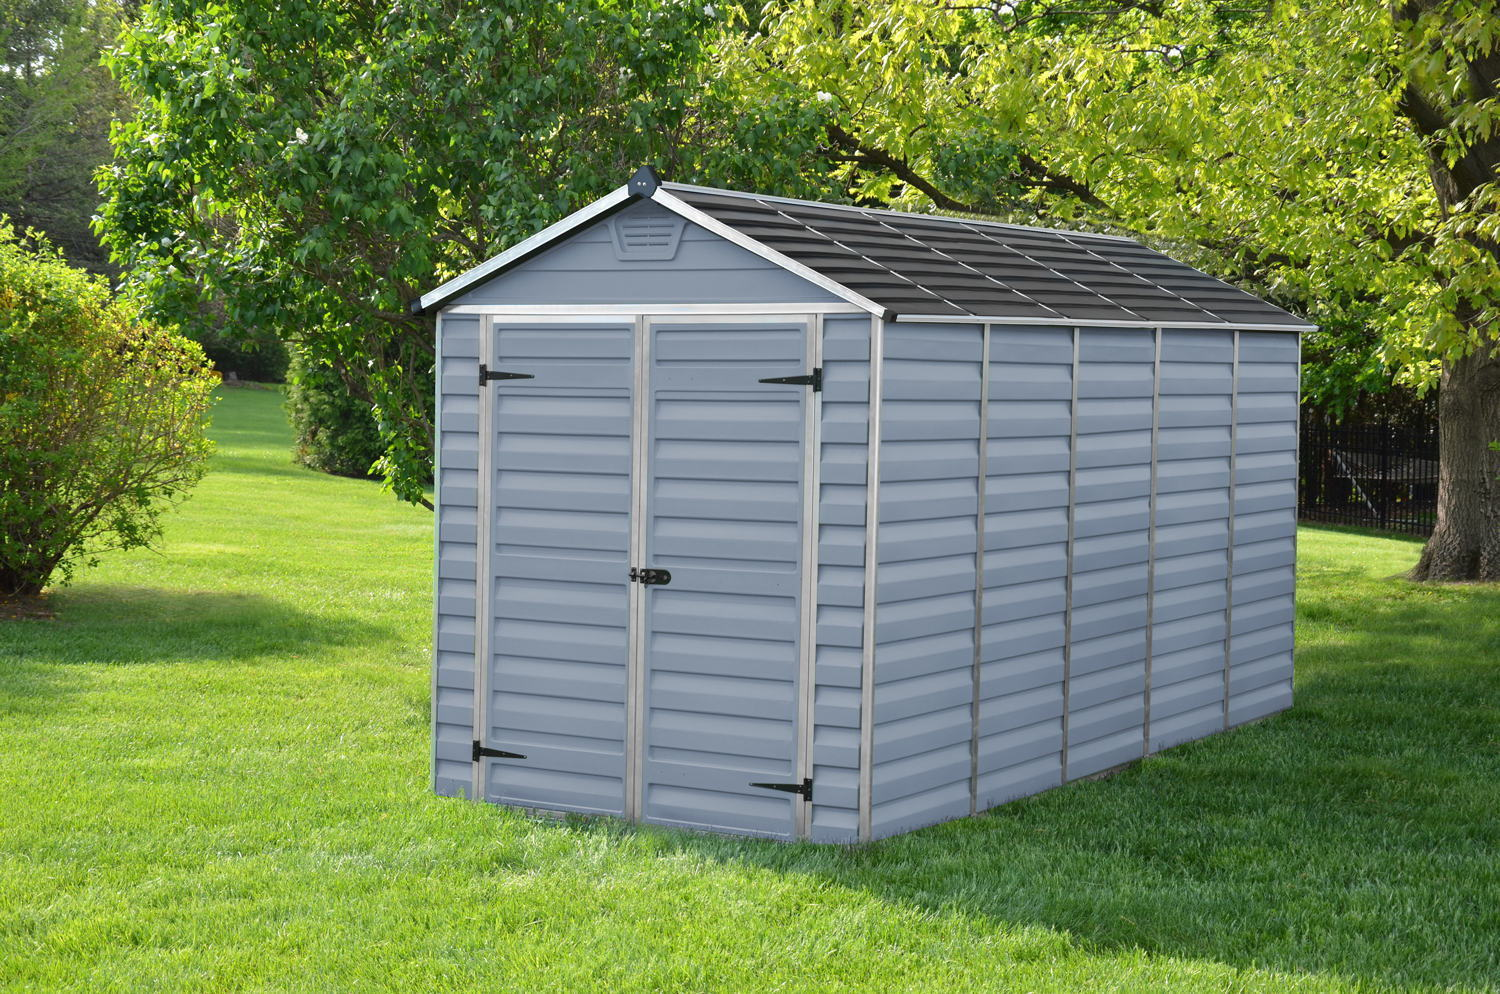 Palram 6x12 Plastic Skylight Grey Shed Greenhouse Stores